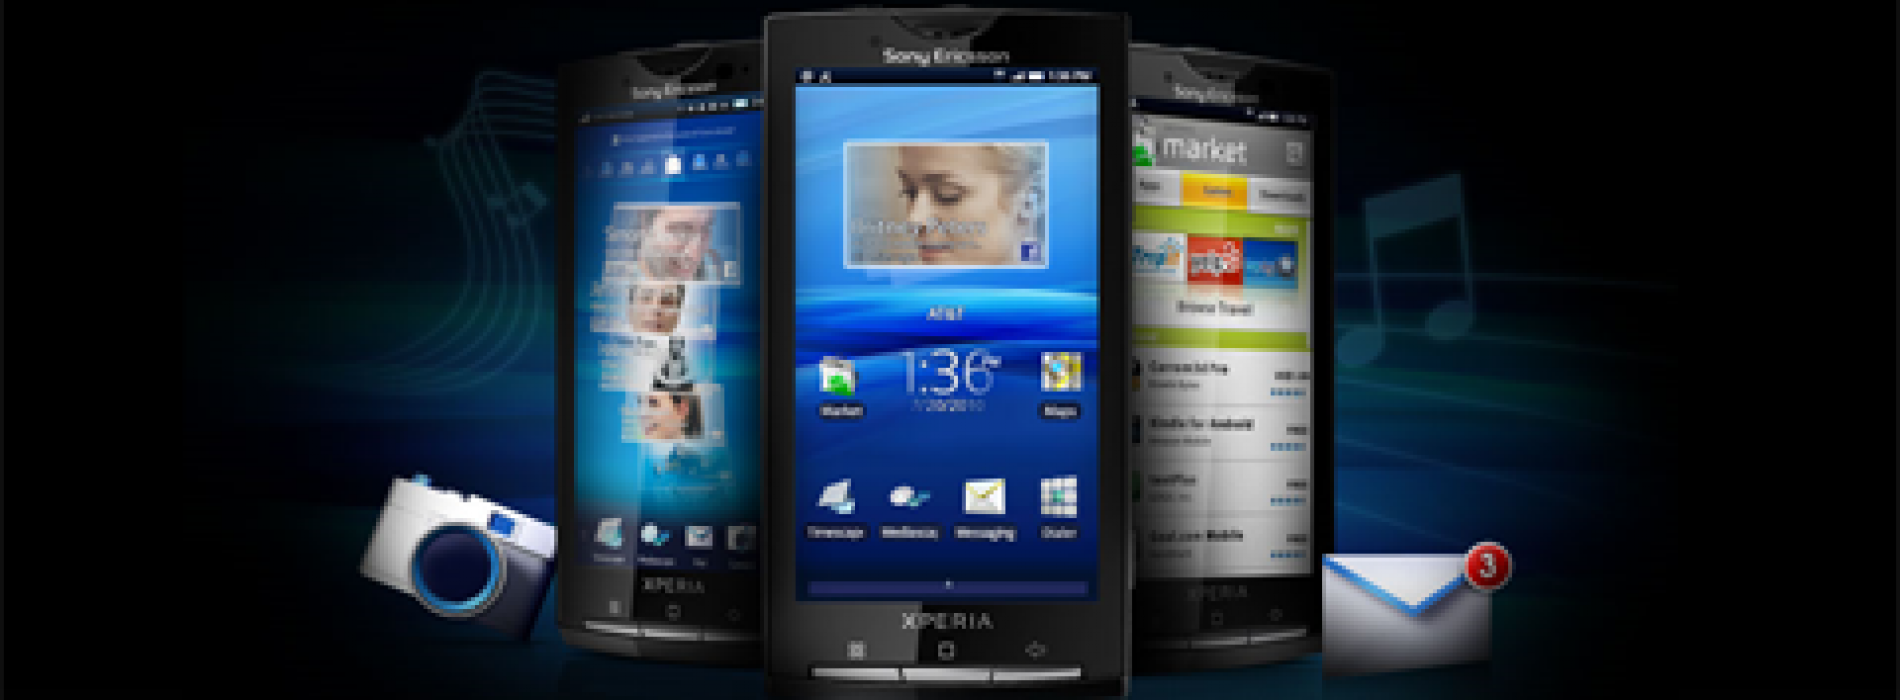 Sony Ericsson Xperia X10 Officially Hits US Next Week via AT&T